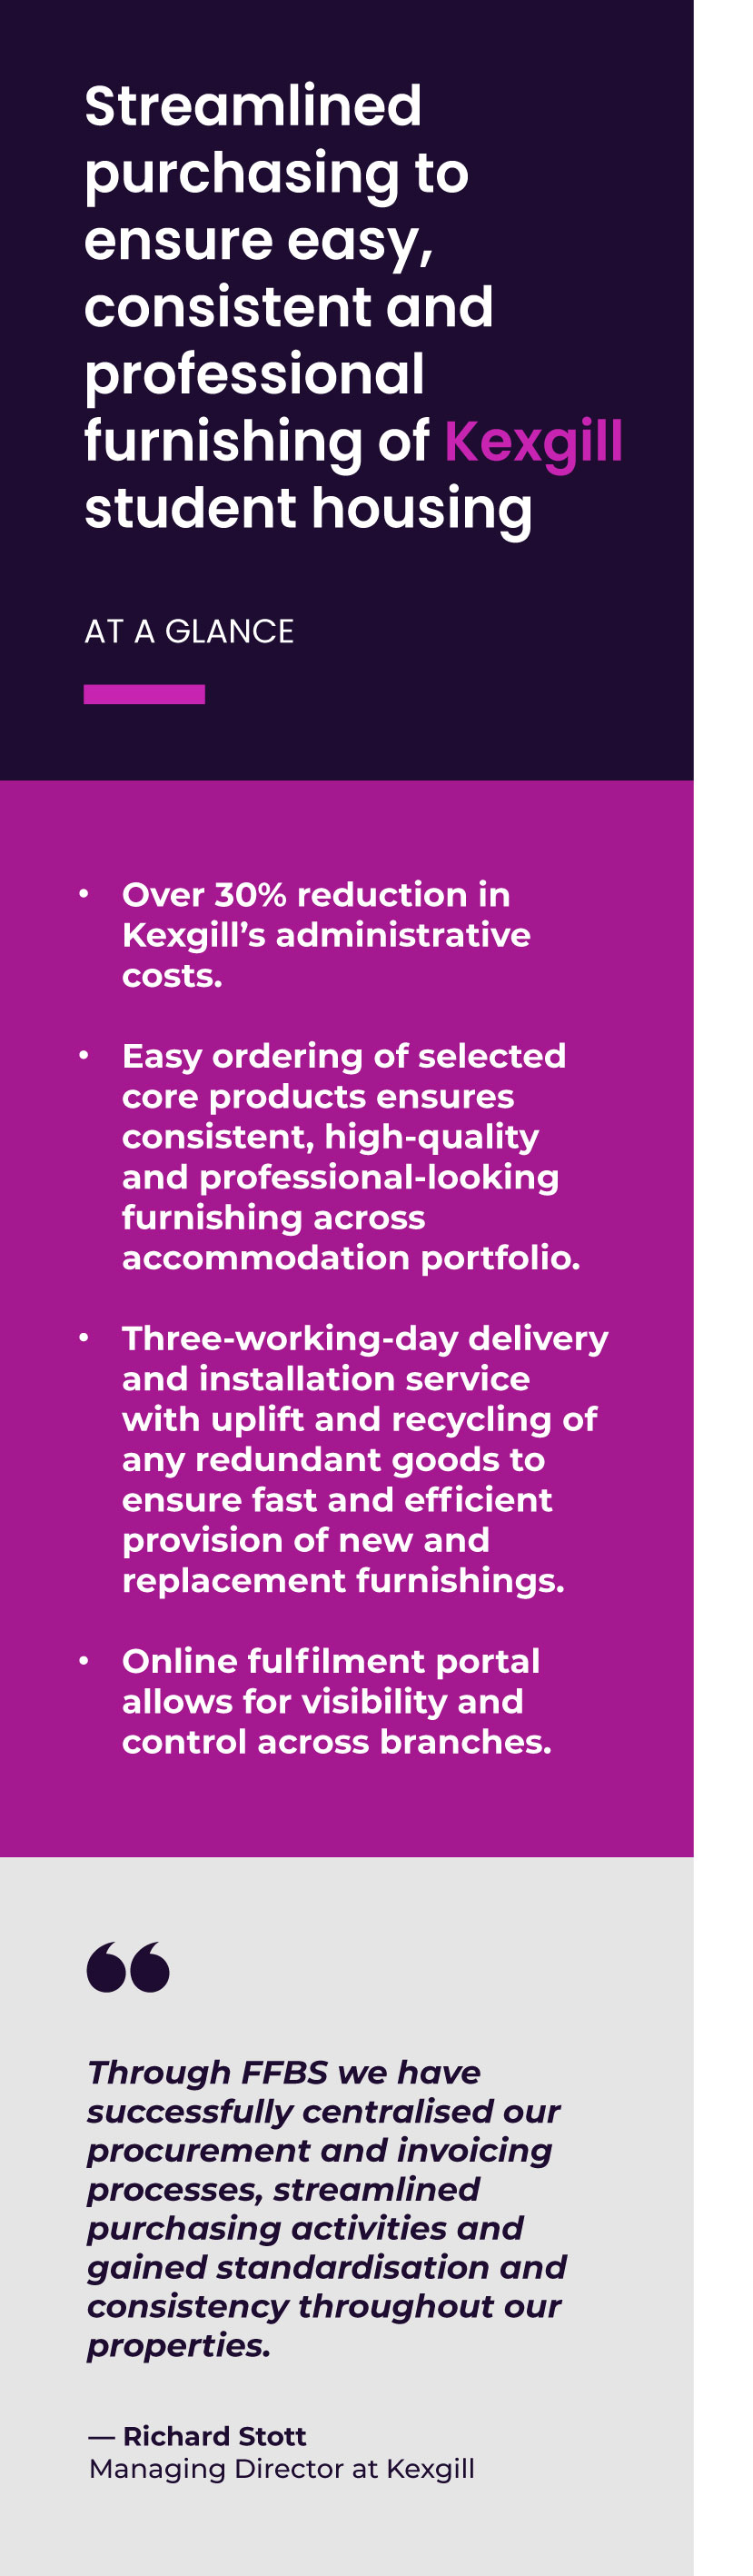 Streamlined purchasing to ensure easy, consistent and professional furnishing of Kexgill student housing